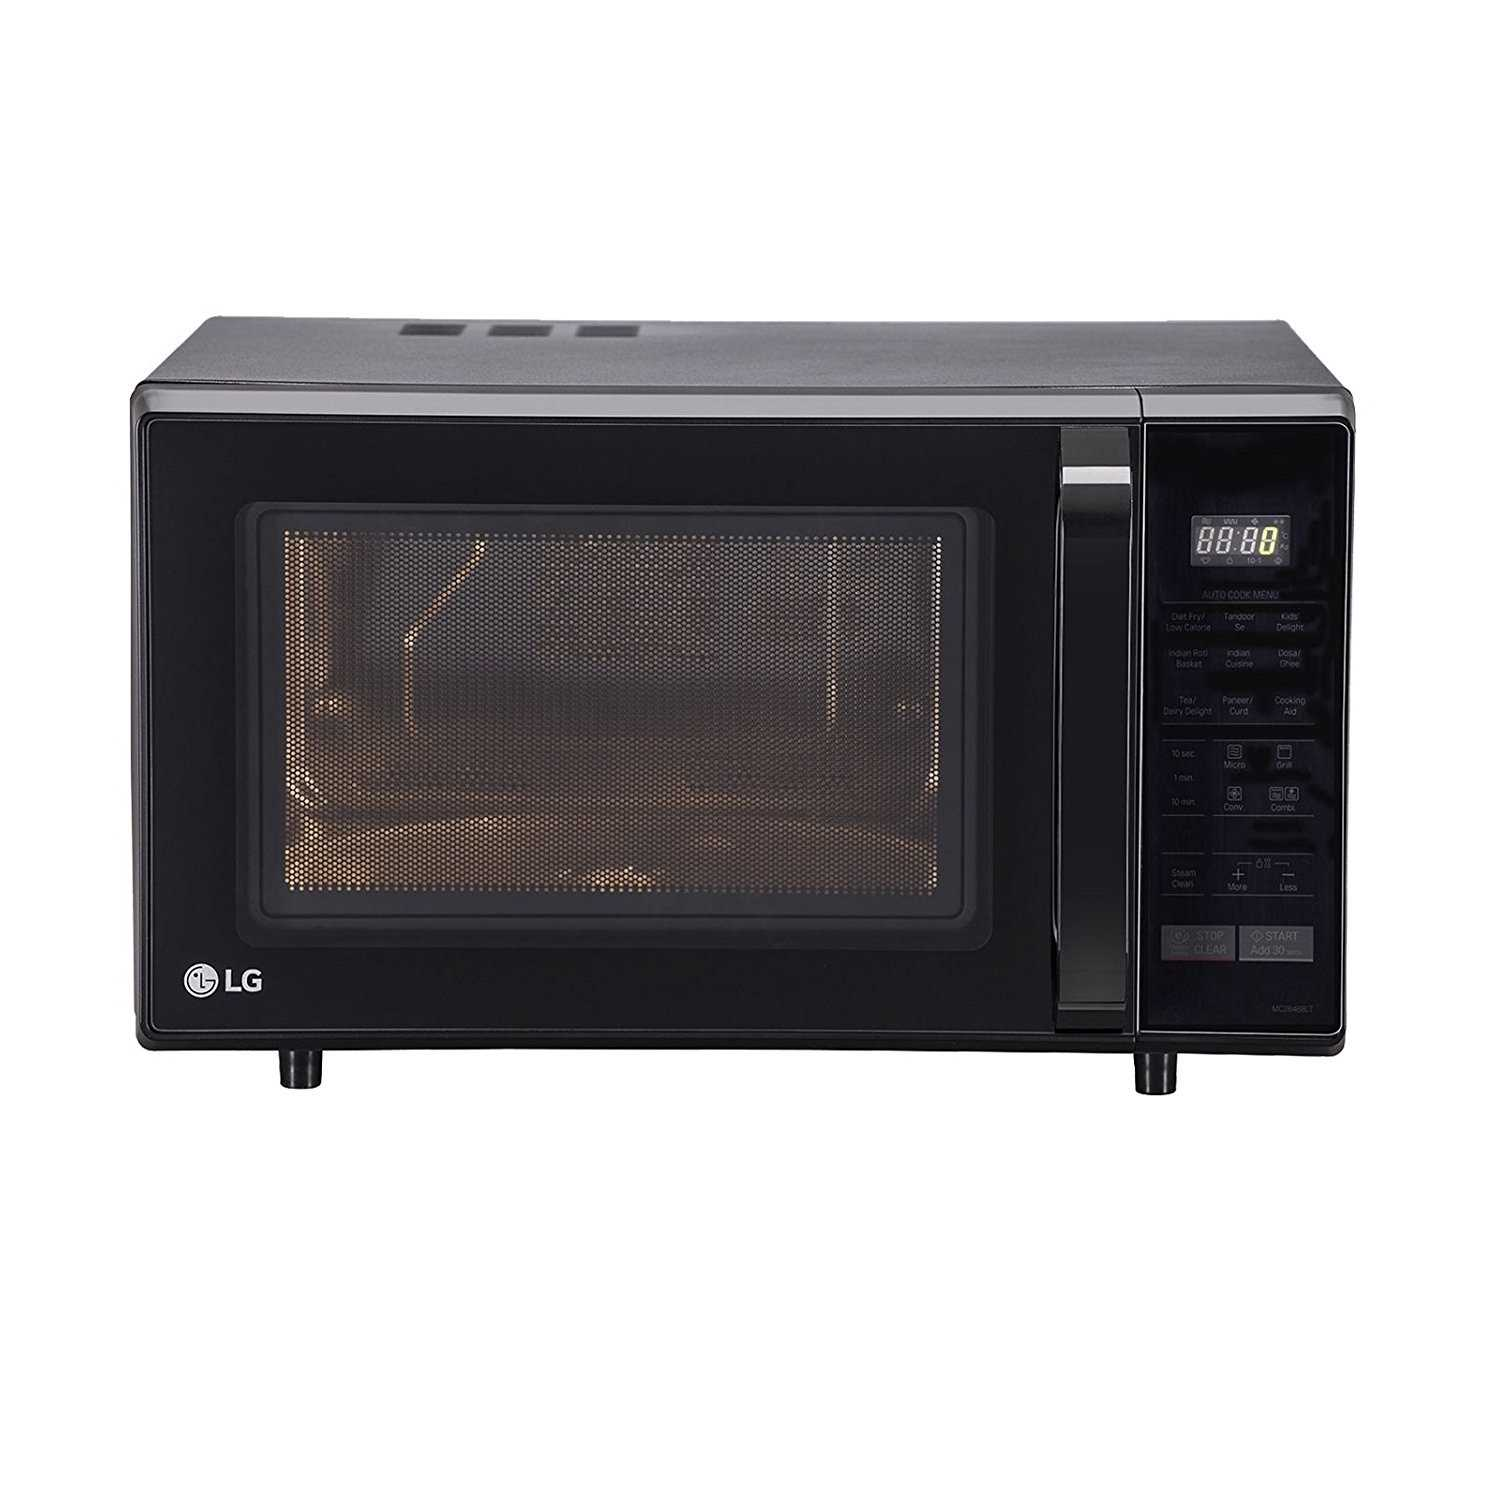 LG MC2846BV 28 Litre Convection Microwave